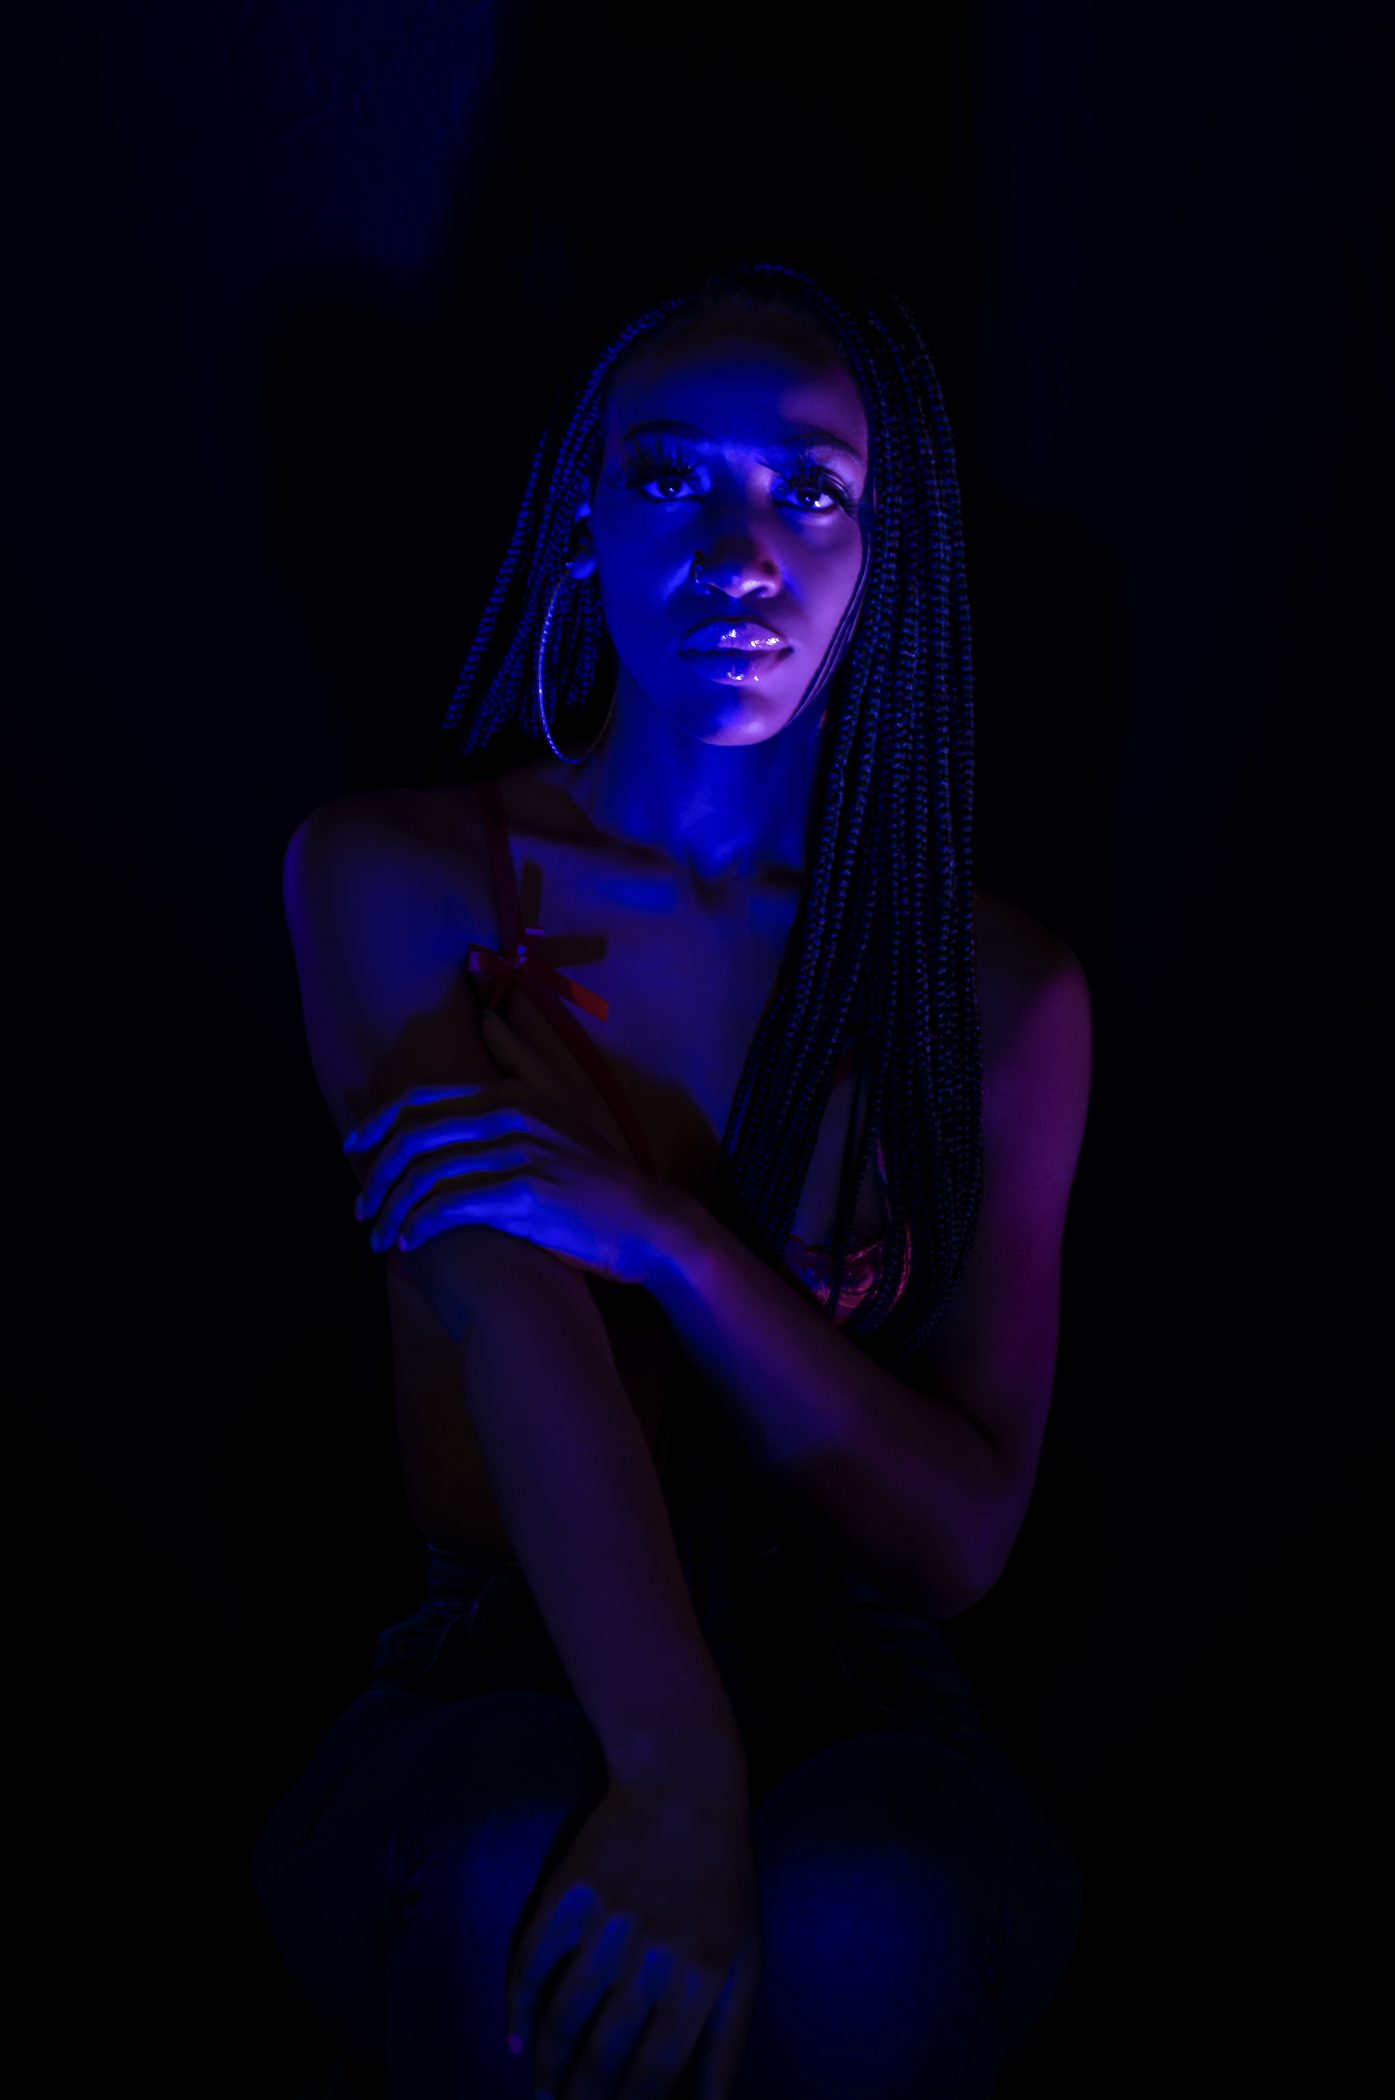 Shoot collab with Shane Talley-Thomas